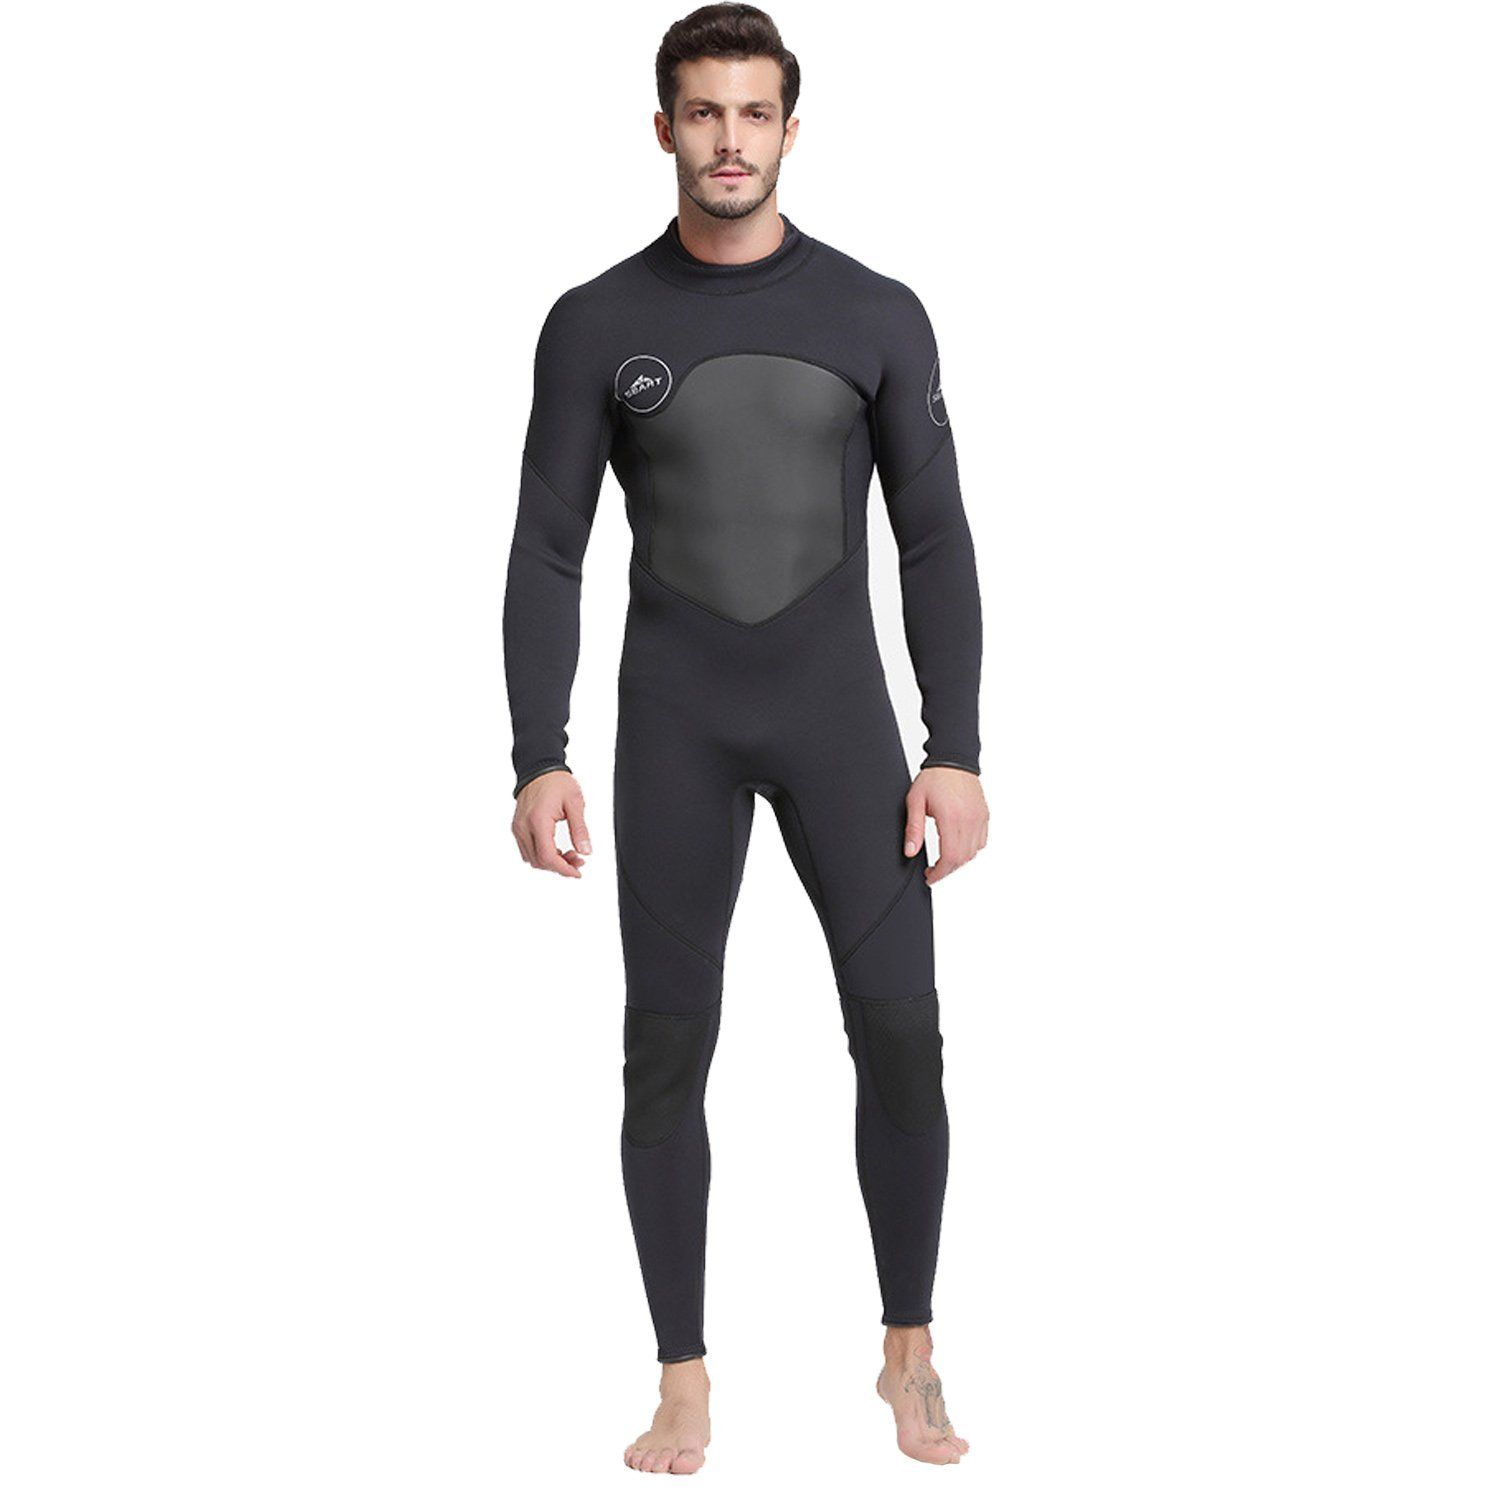 cdc24a96b5 Amazon.com  Cahayi Full Wetsuit 3mm Neoprene Long Sleeve Mens Diving  Surfing Suit Plus Size  Sports   Outdoors